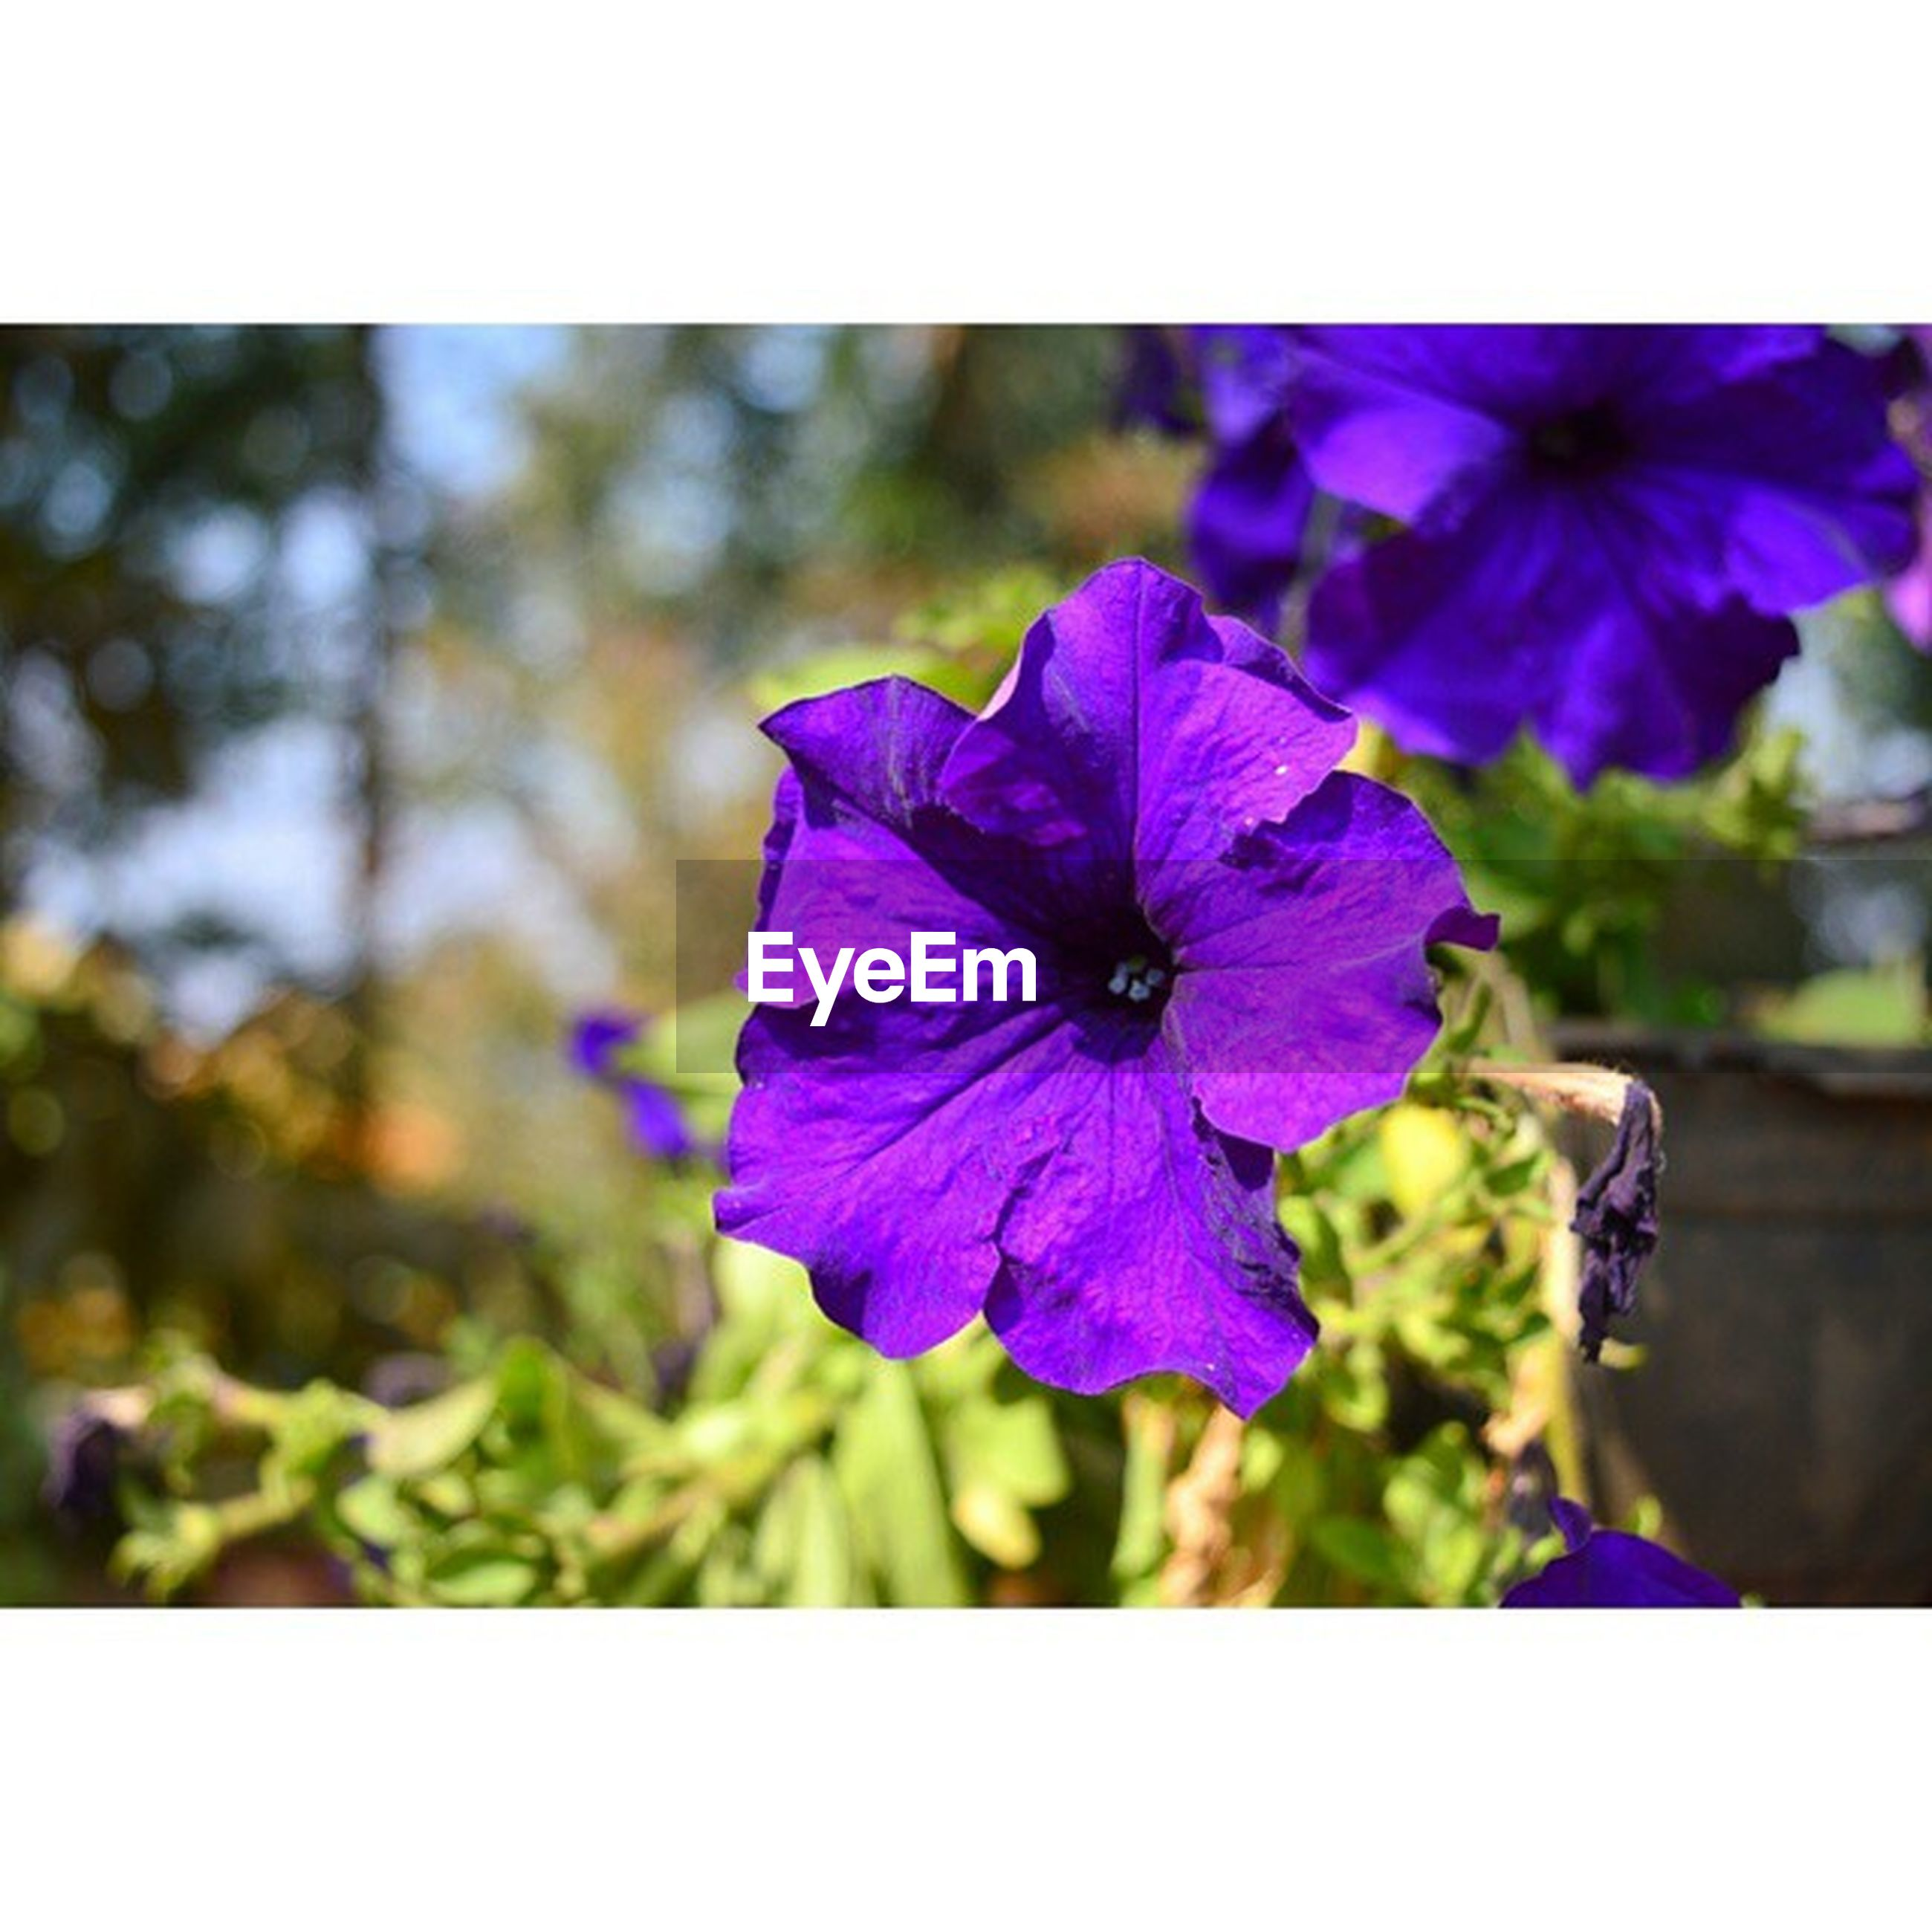 flower, freshness, petal, purple, flower head, fragility, growth, transfer print, beauty in nature, close-up, auto post production filter, blooming, nature, focus on foreground, plant, pollen, in bloom, blossom, stamen, selective focus